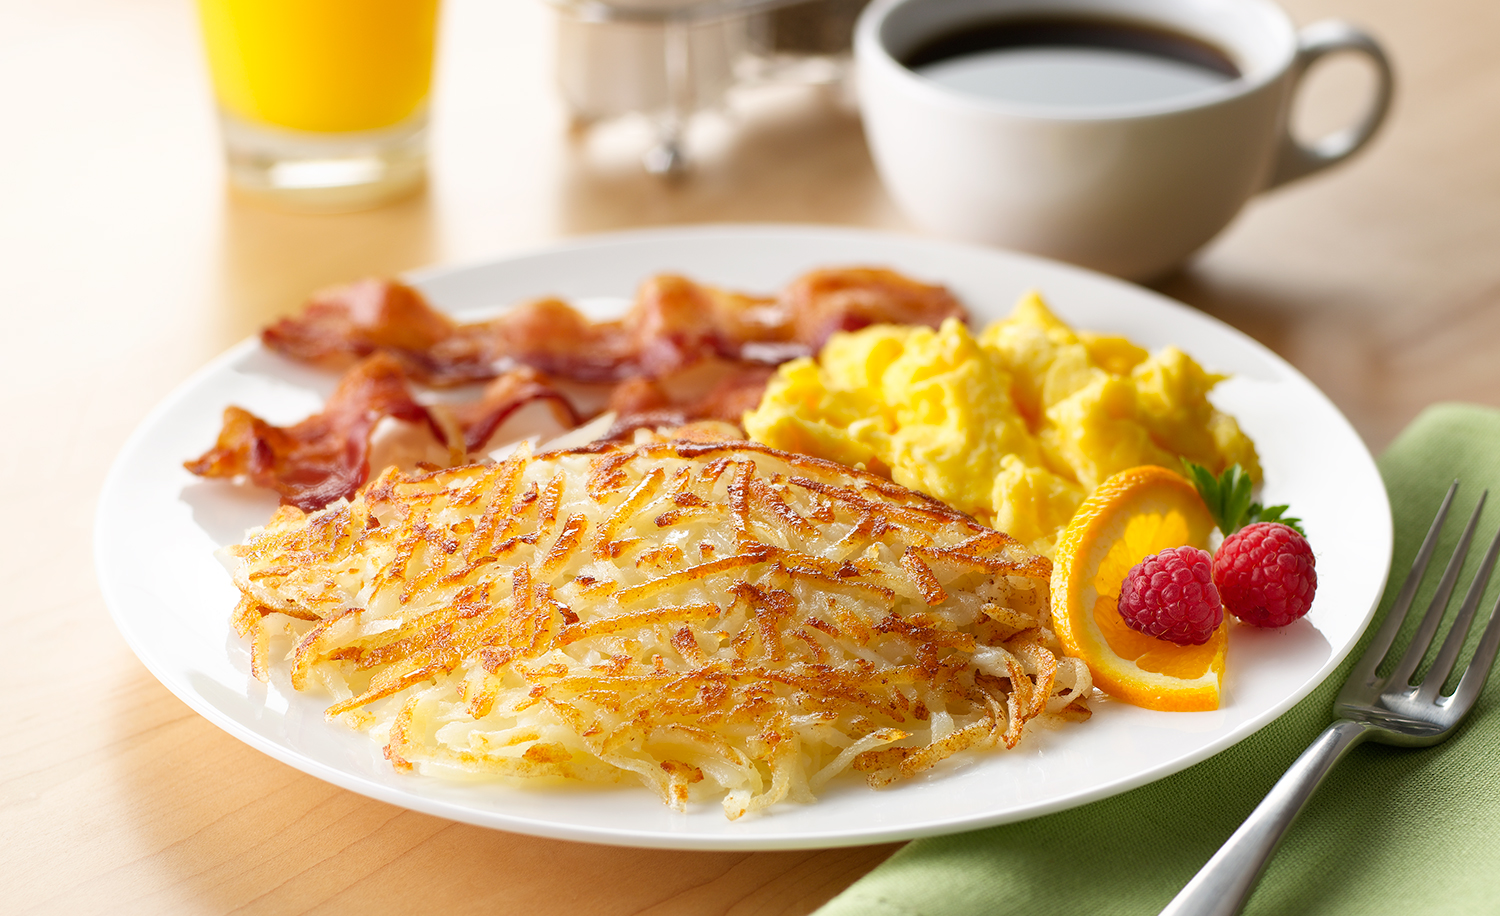 Hashbrowns With Eggs And Bacon | Tony Kubat Photography